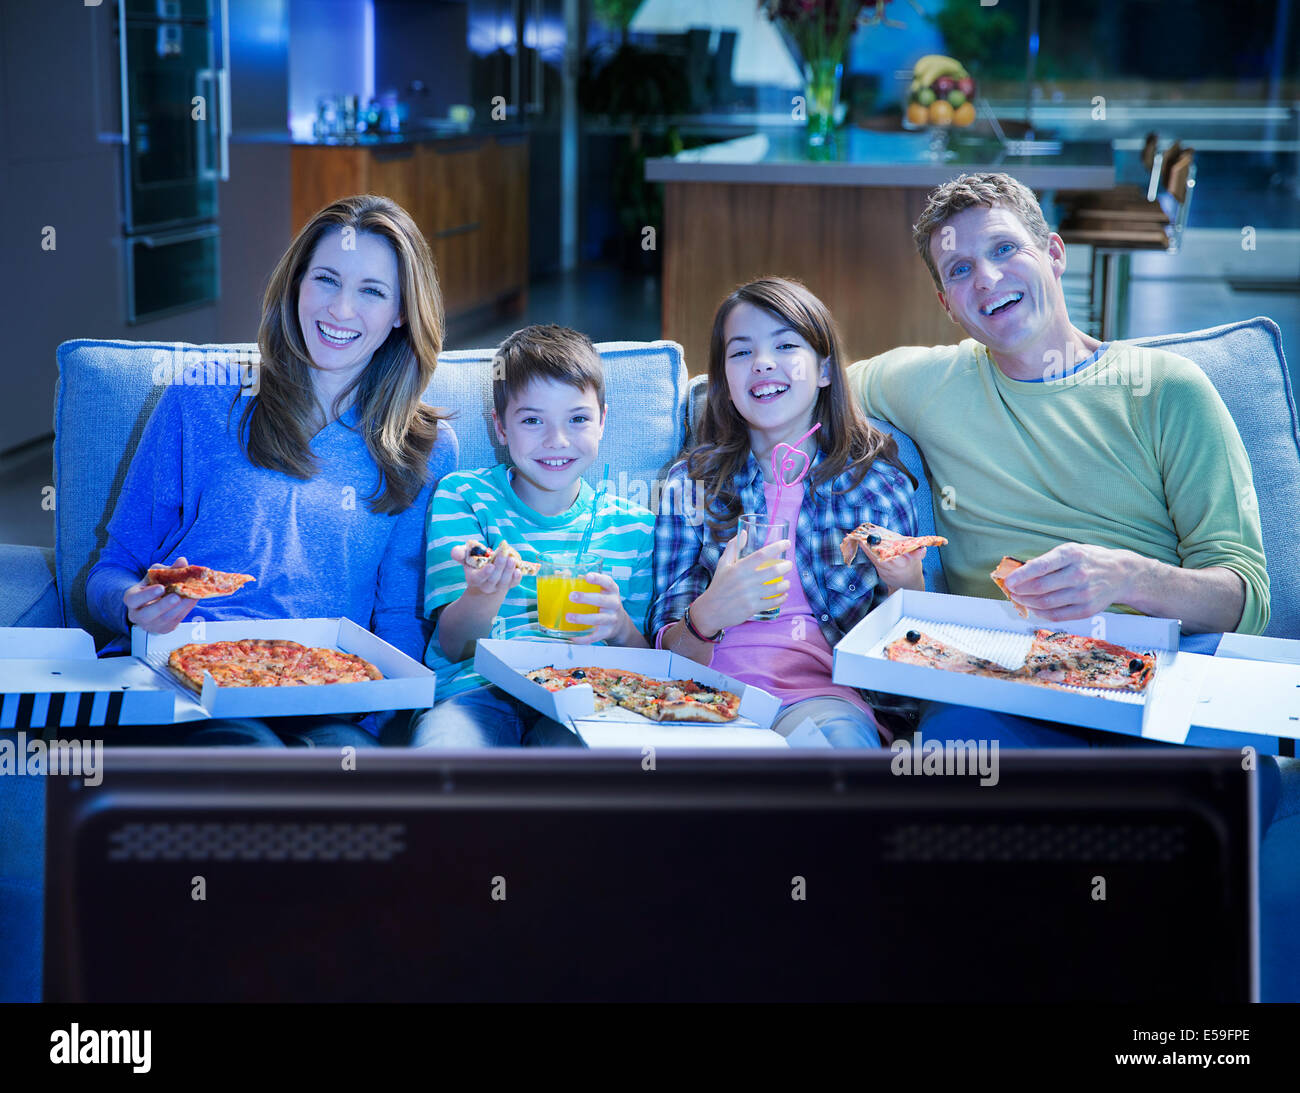 Family eating pizza in front of television in living room - Stock Image